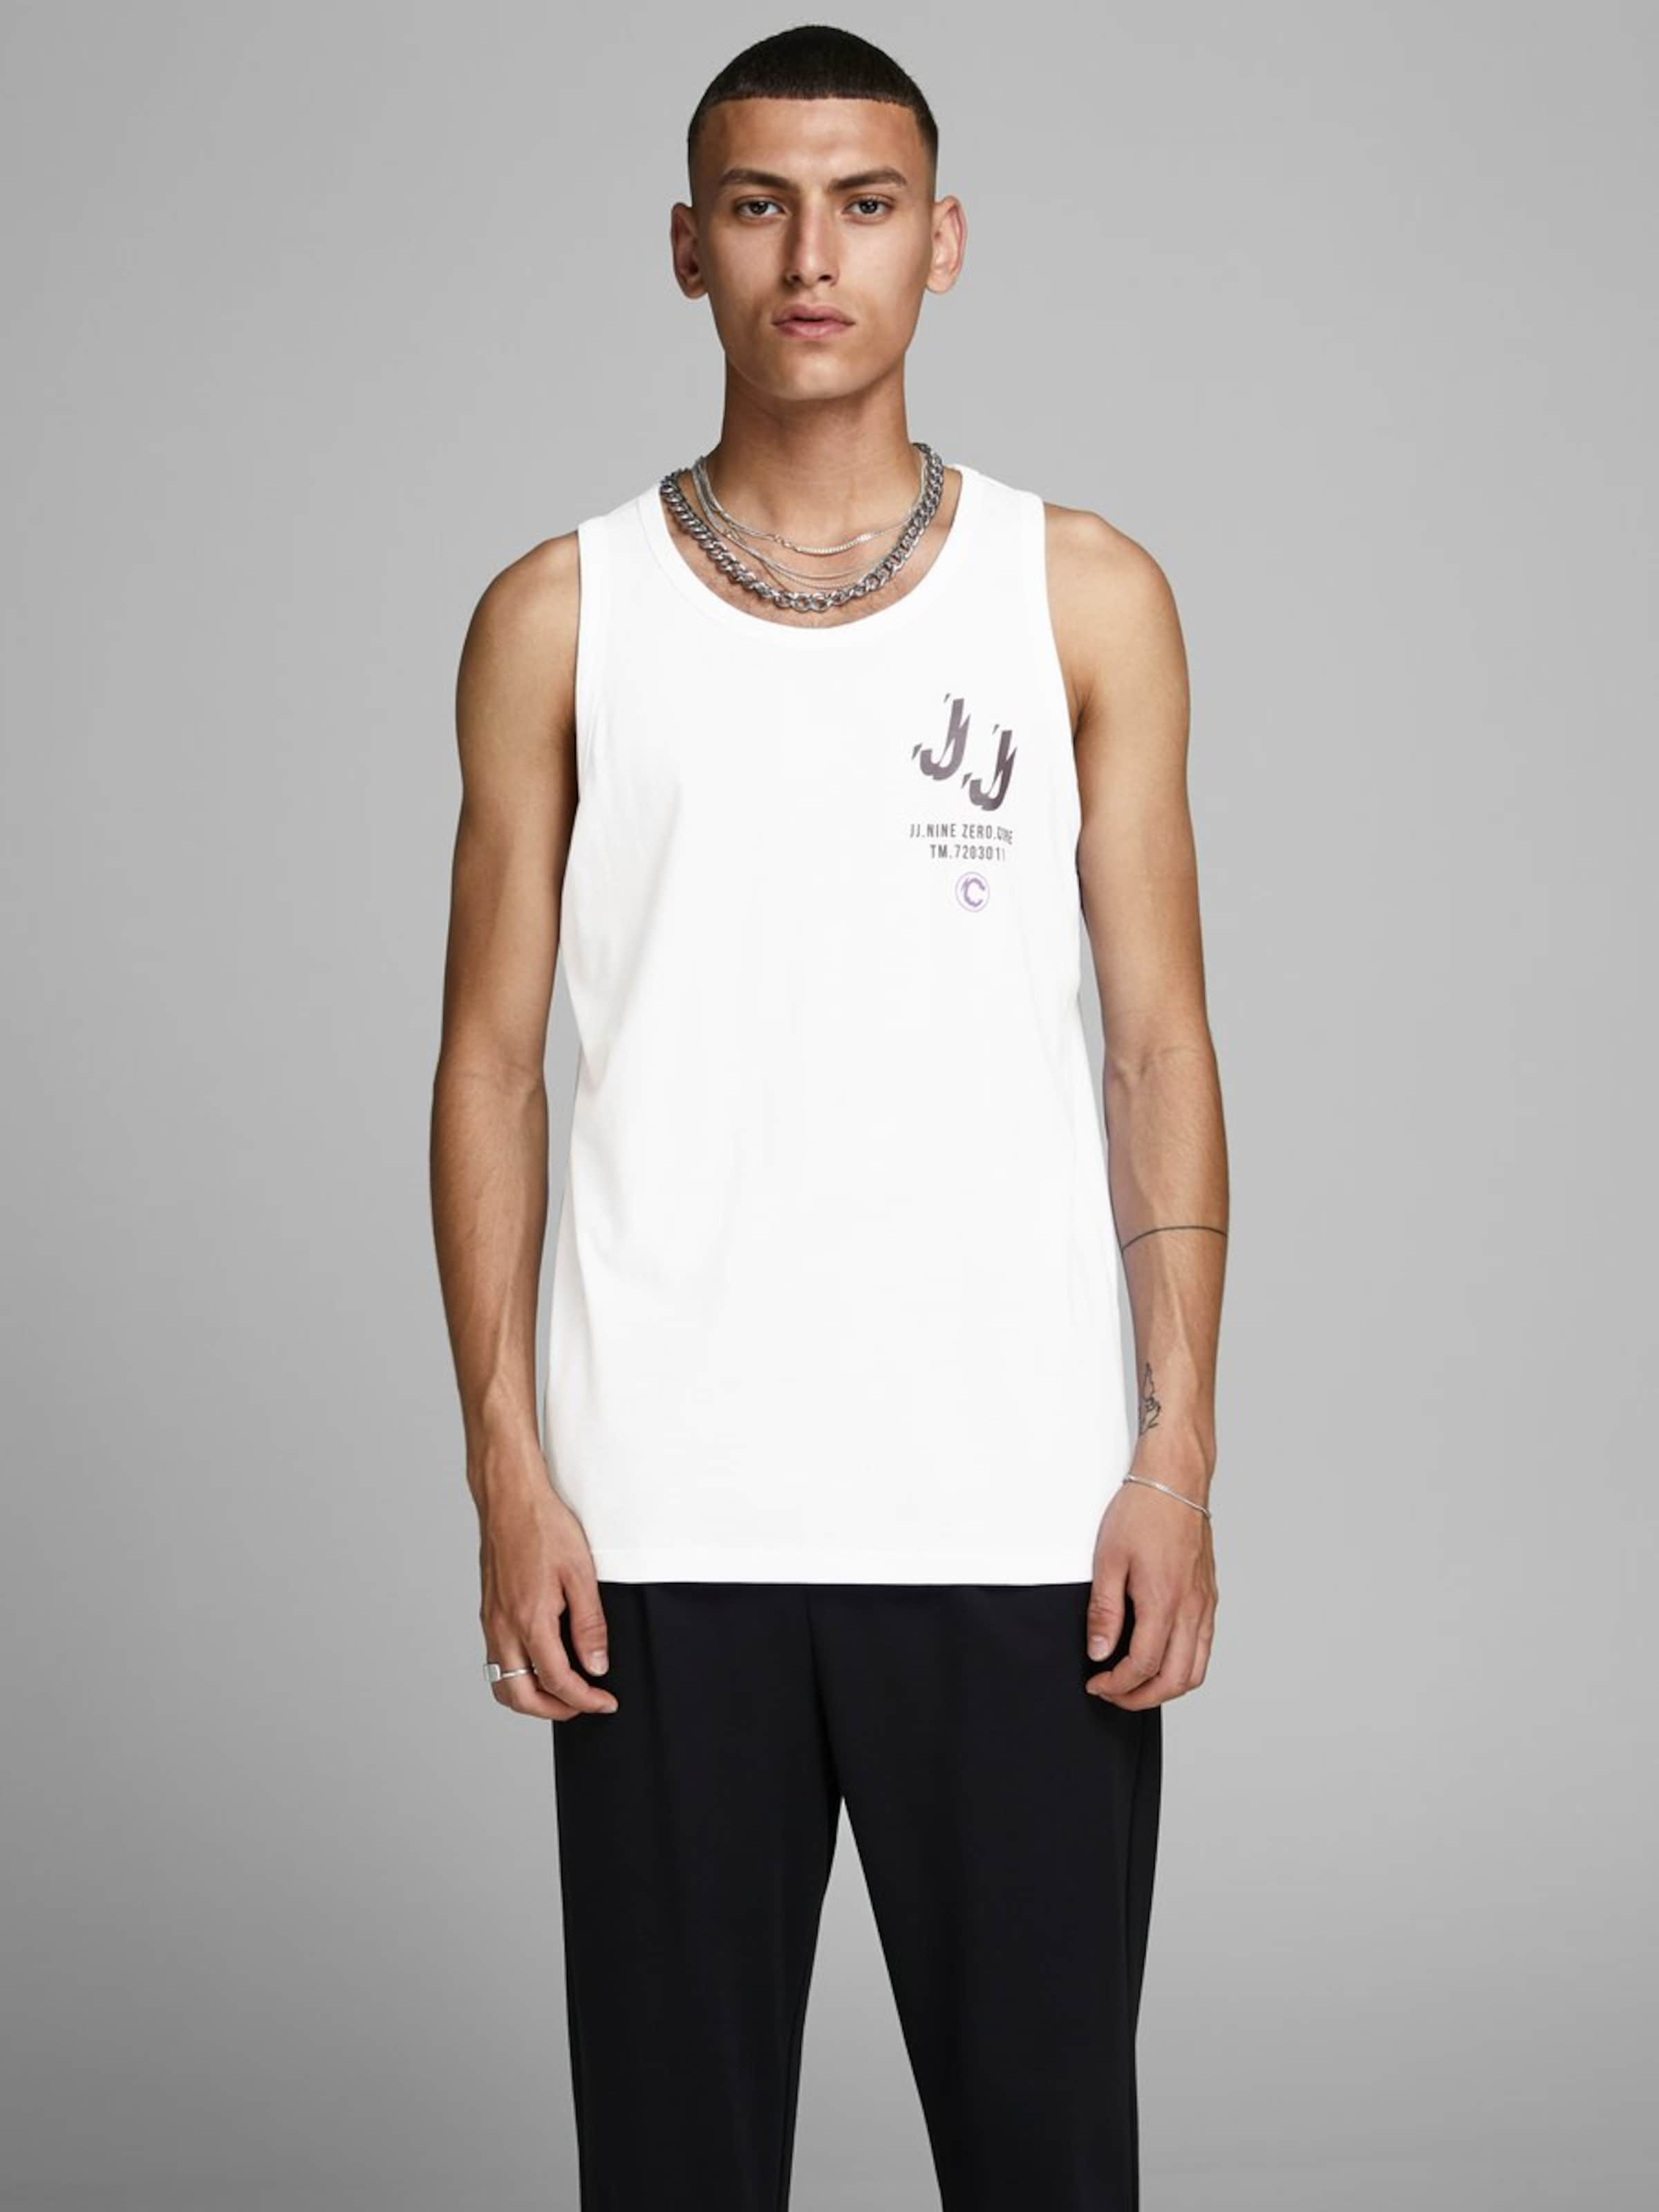 En PourpreNoir T Jones Blanc shirt Jackamp; wXulOPkTZi